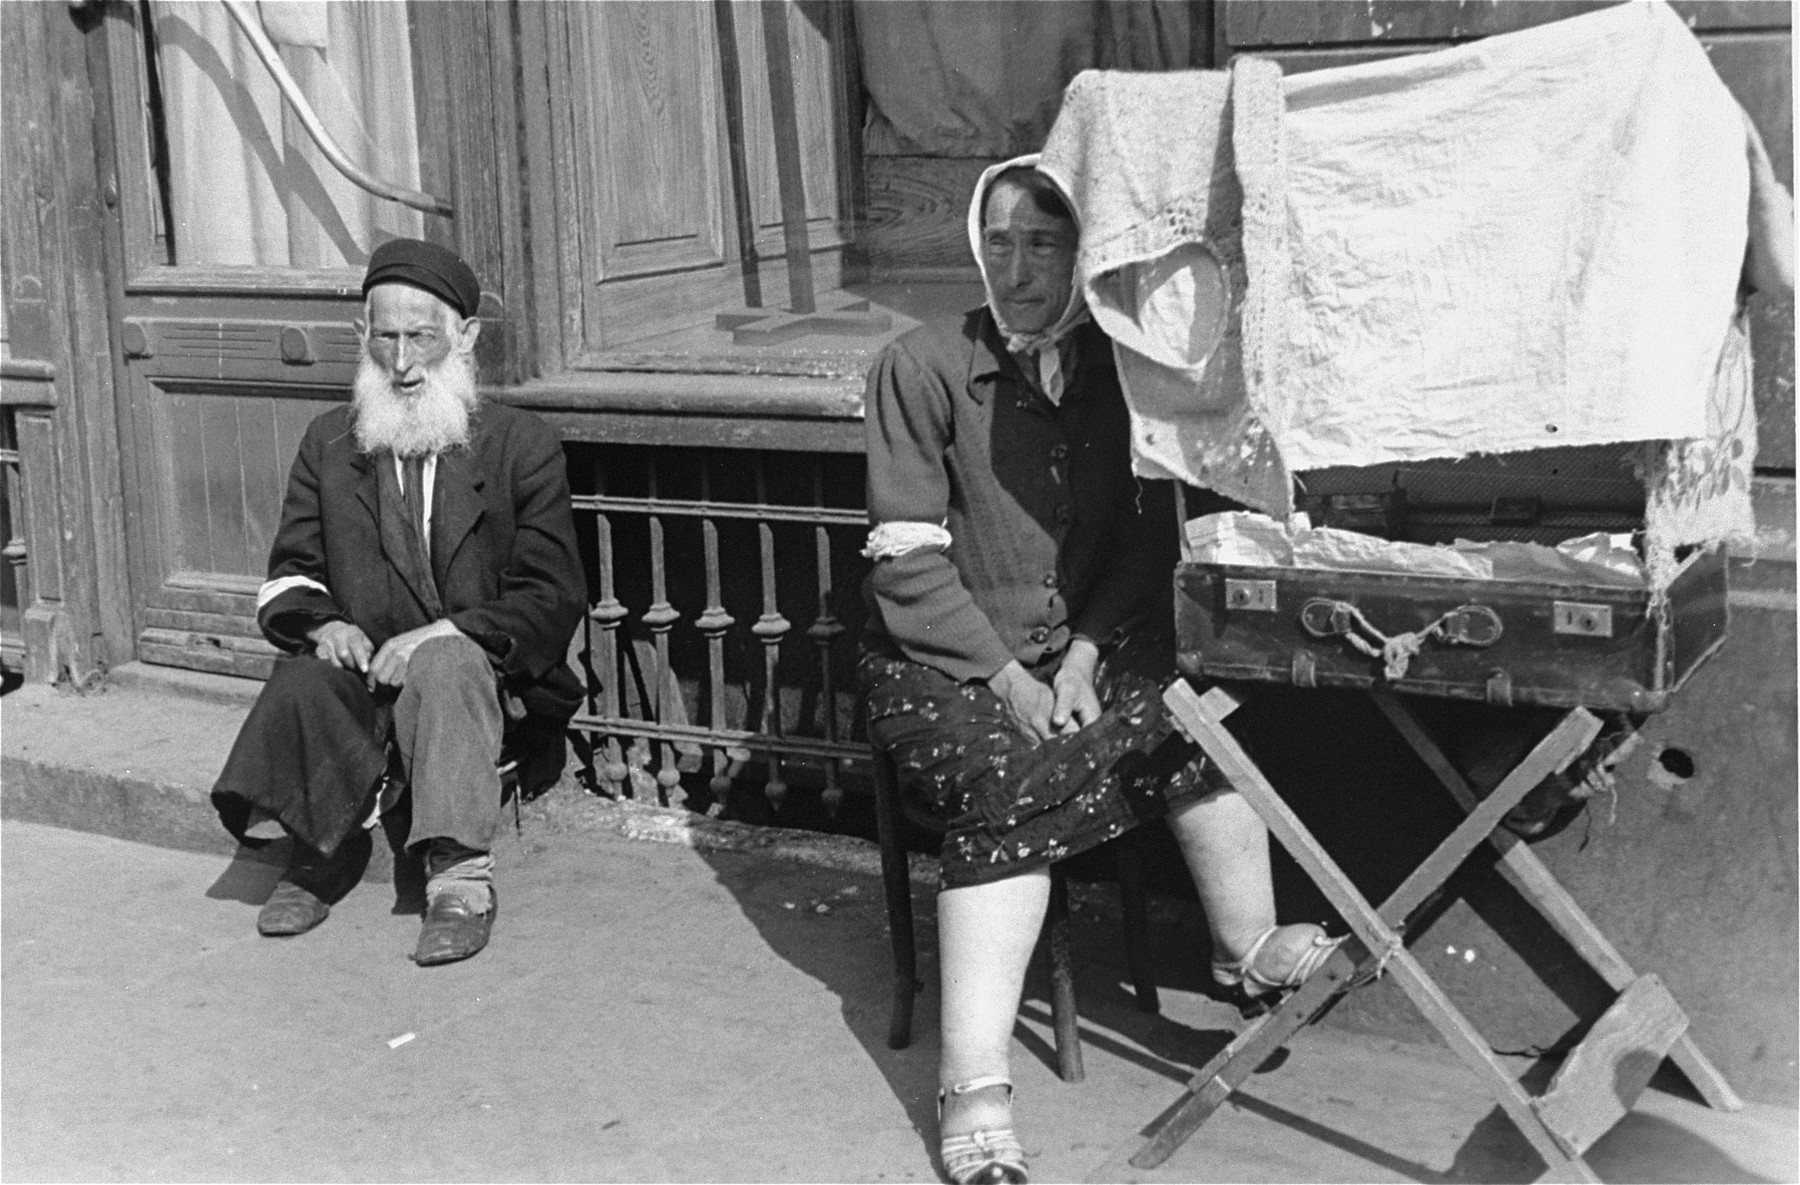 A female vendor sits on a street in the Warsaw ghetto next to an open suitcase containing her wares that has been covered with a dress to provide some shade.  An elderly, bearded man sits nearby.